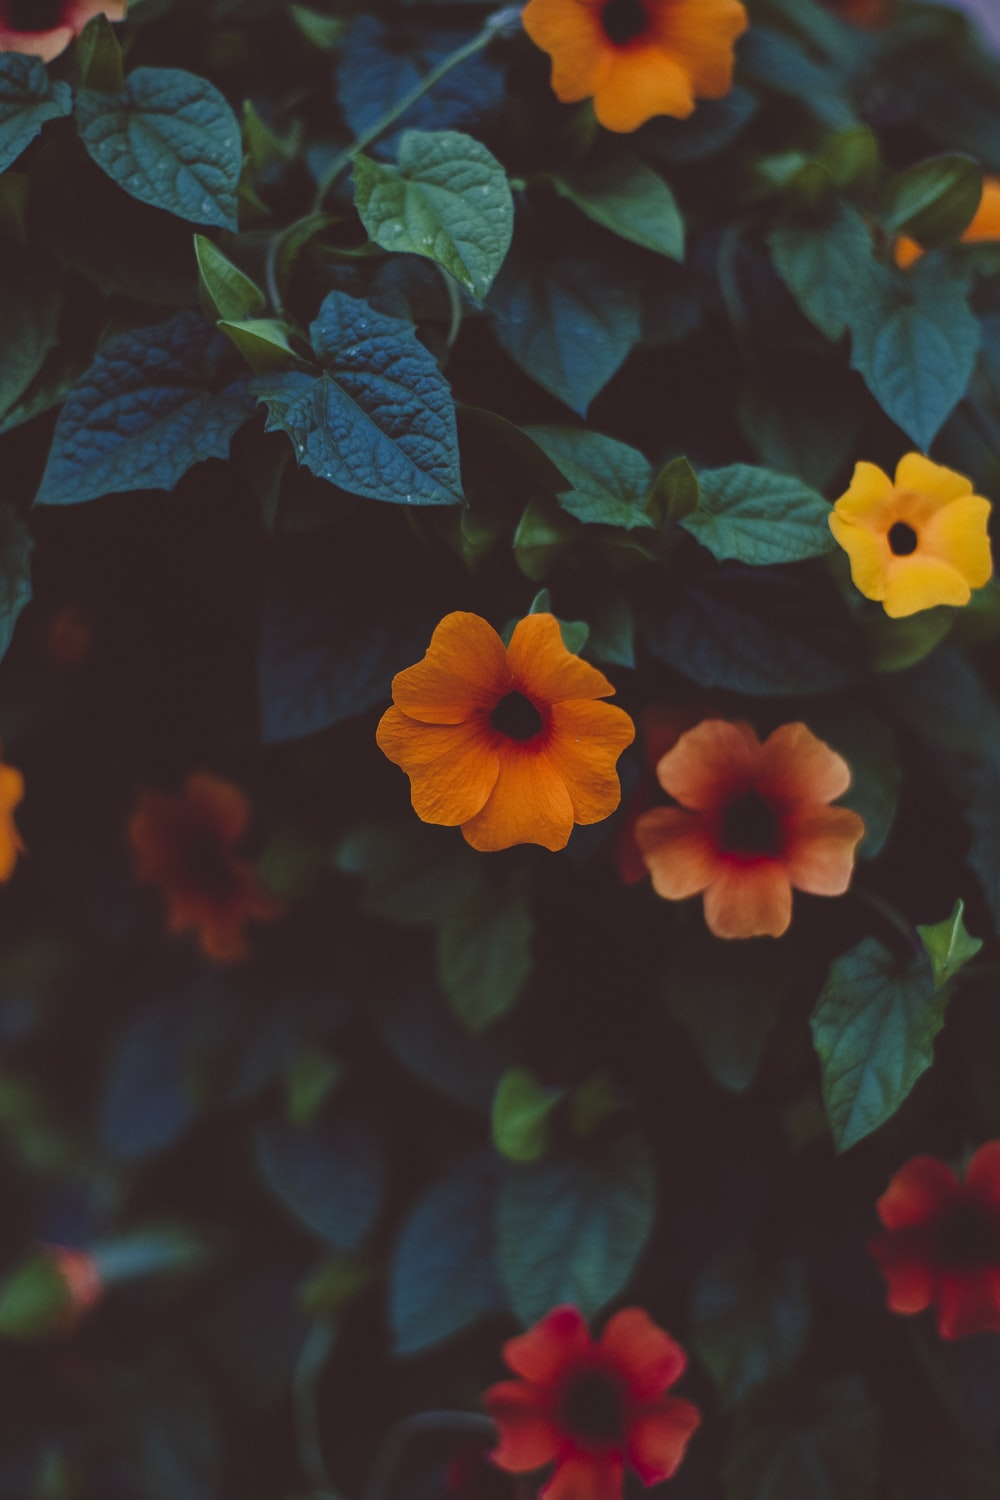 yellow, red, and orange colored flowers